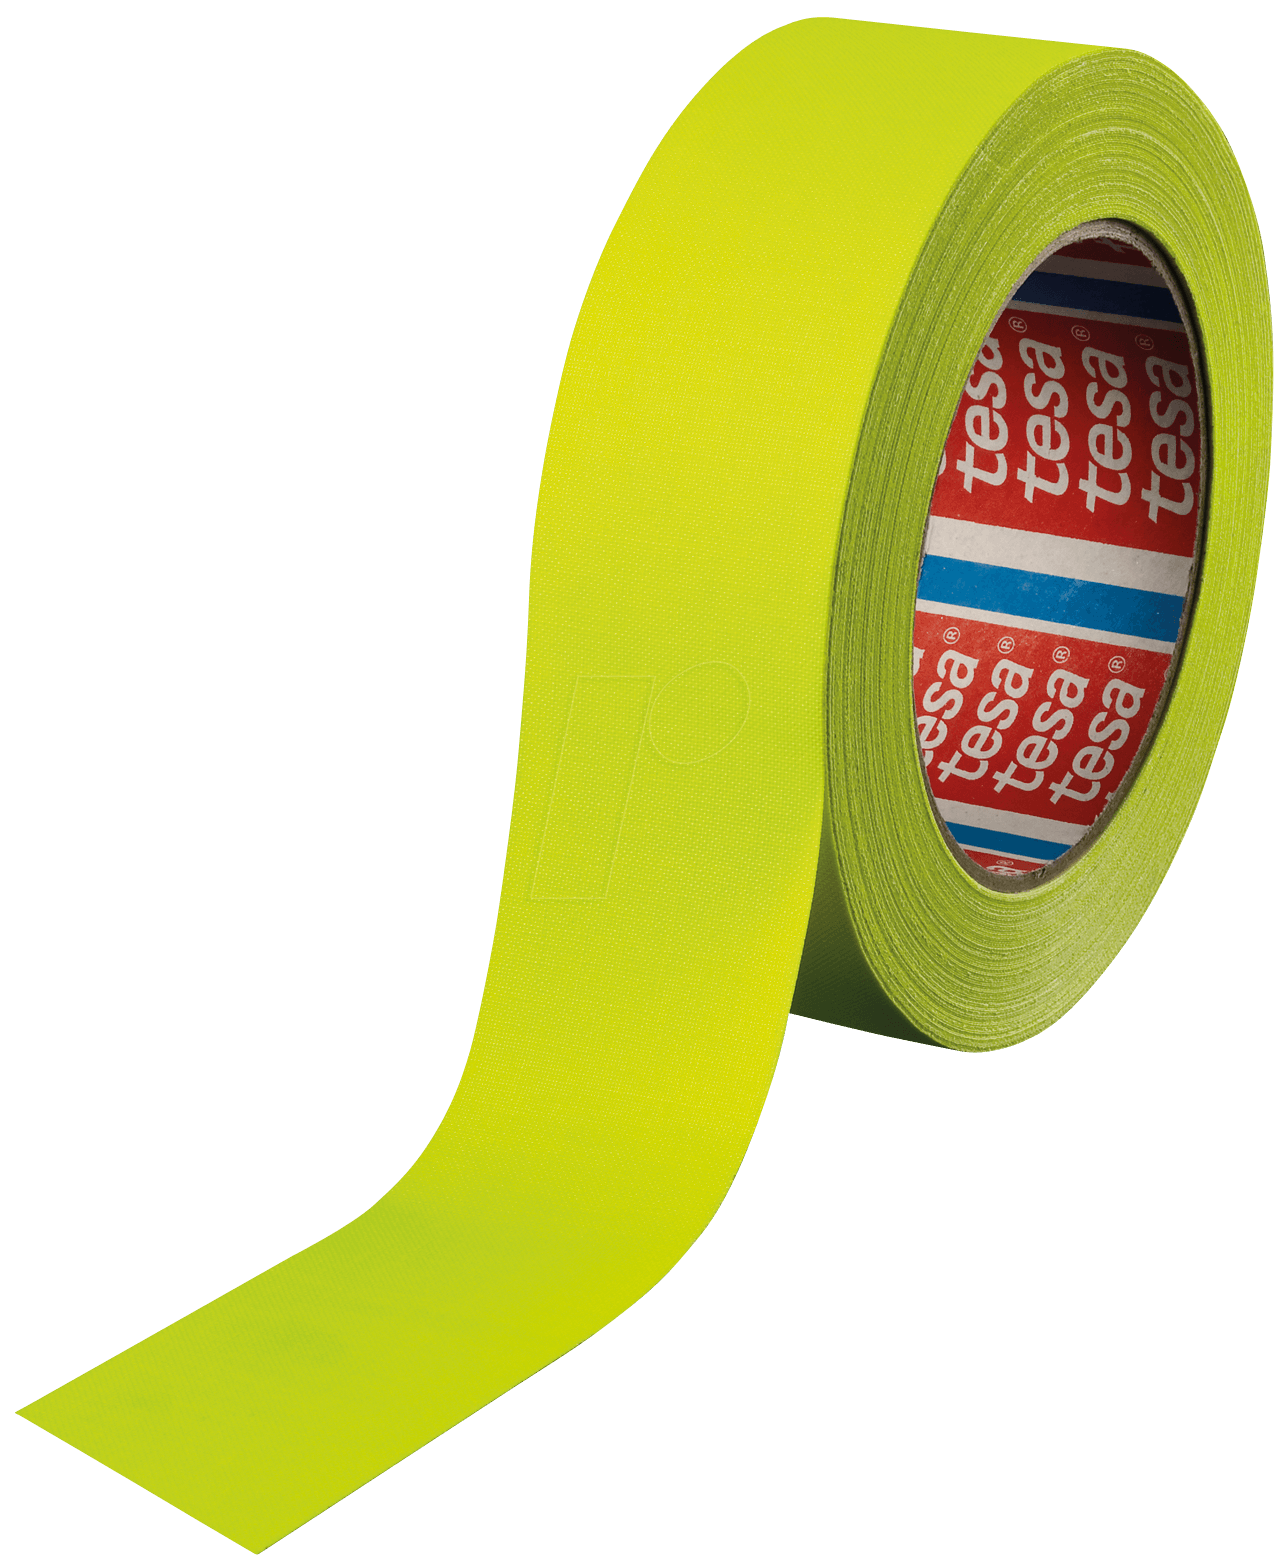 tesa 4671ge 25 highlight fabric tape neon yellow 25 mm at reichelt elektronik. Black Bedroom Furniture Sets. Home Design Ideas